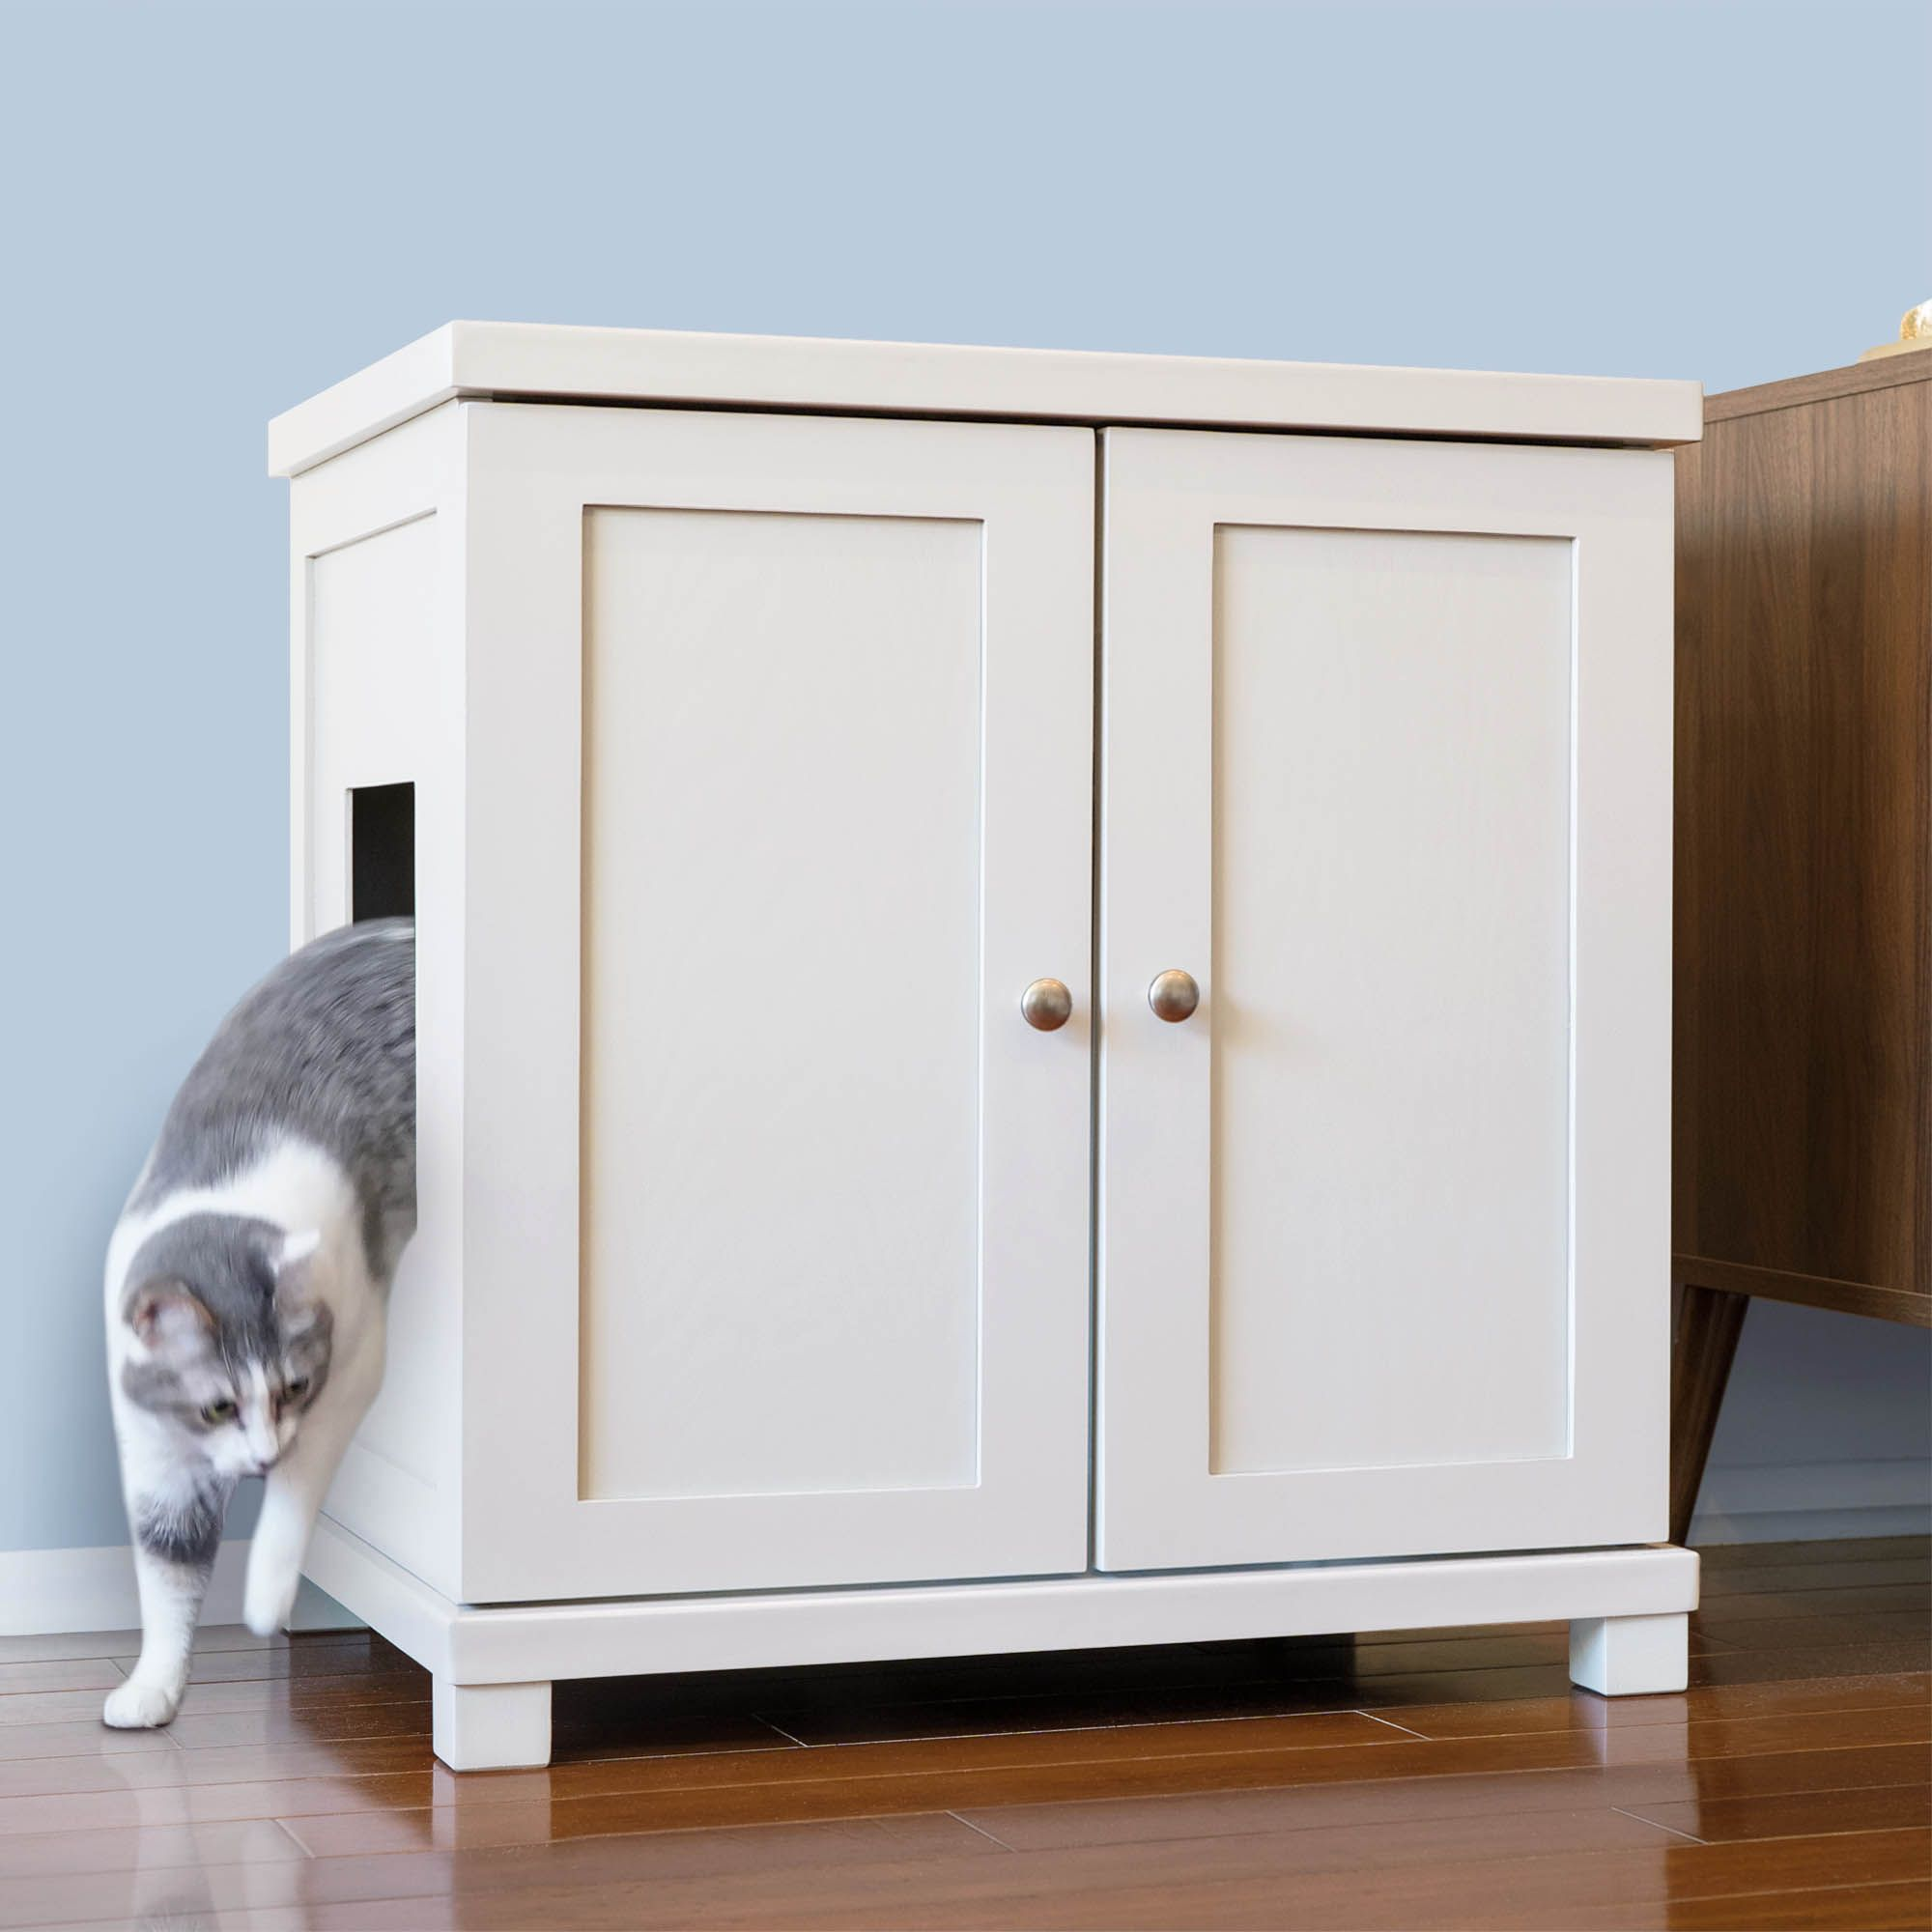 Cat Litter Box And More: Supplies For New Cat Adopters 17